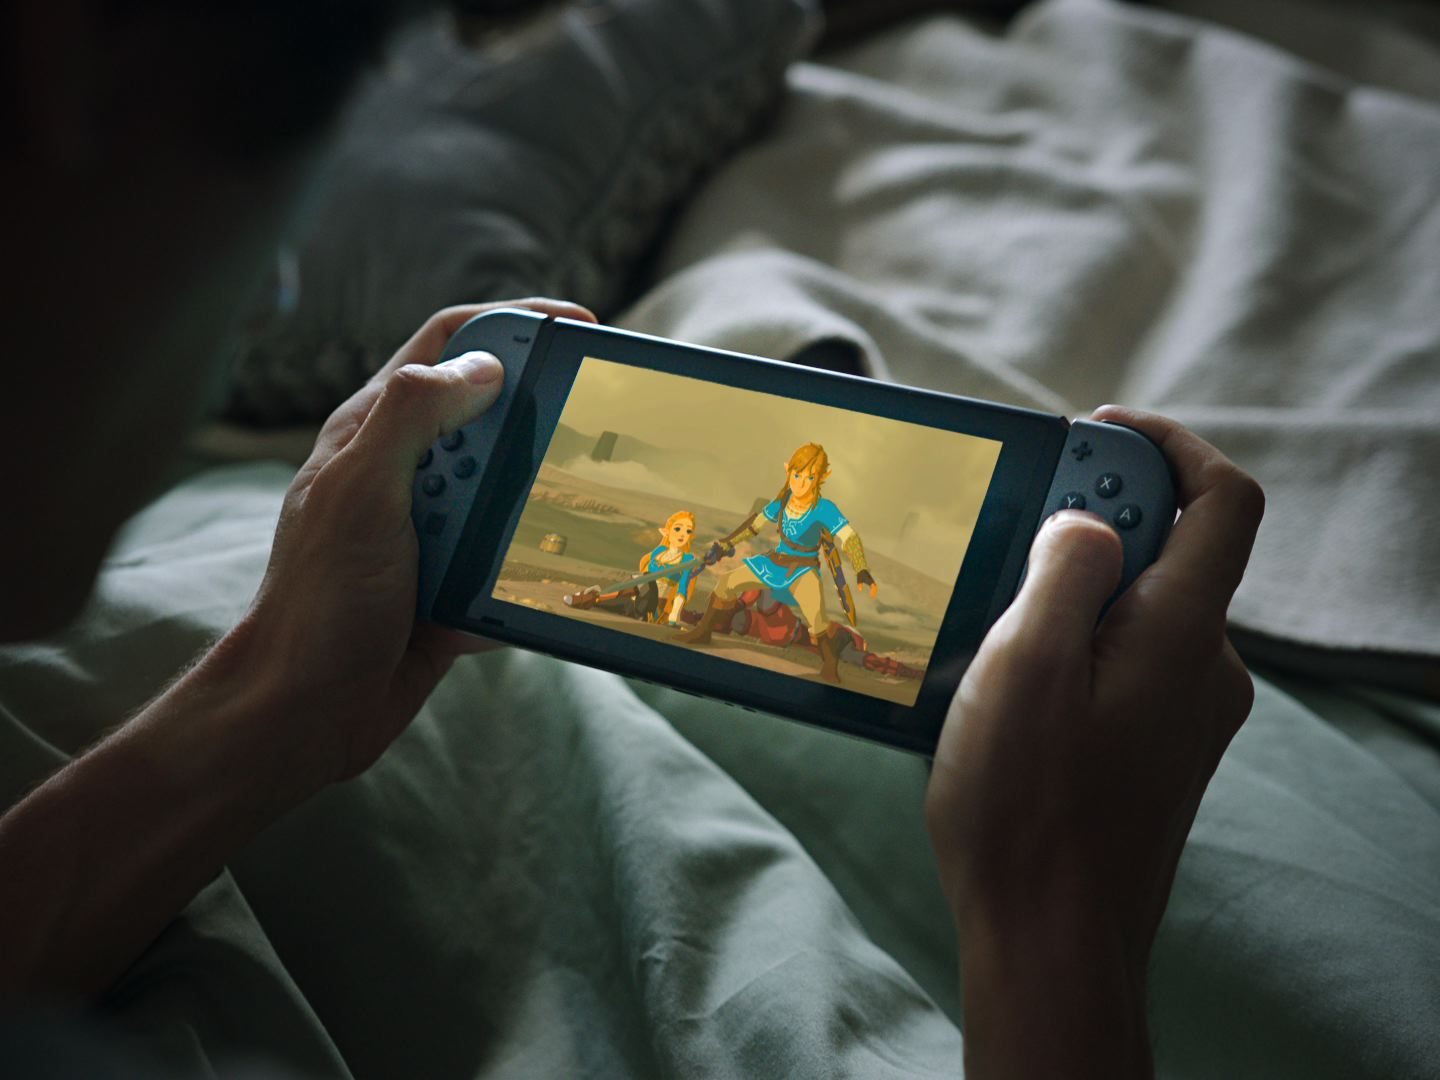 The 8 Best Sd Cards For The Nintendo Switch In 2019